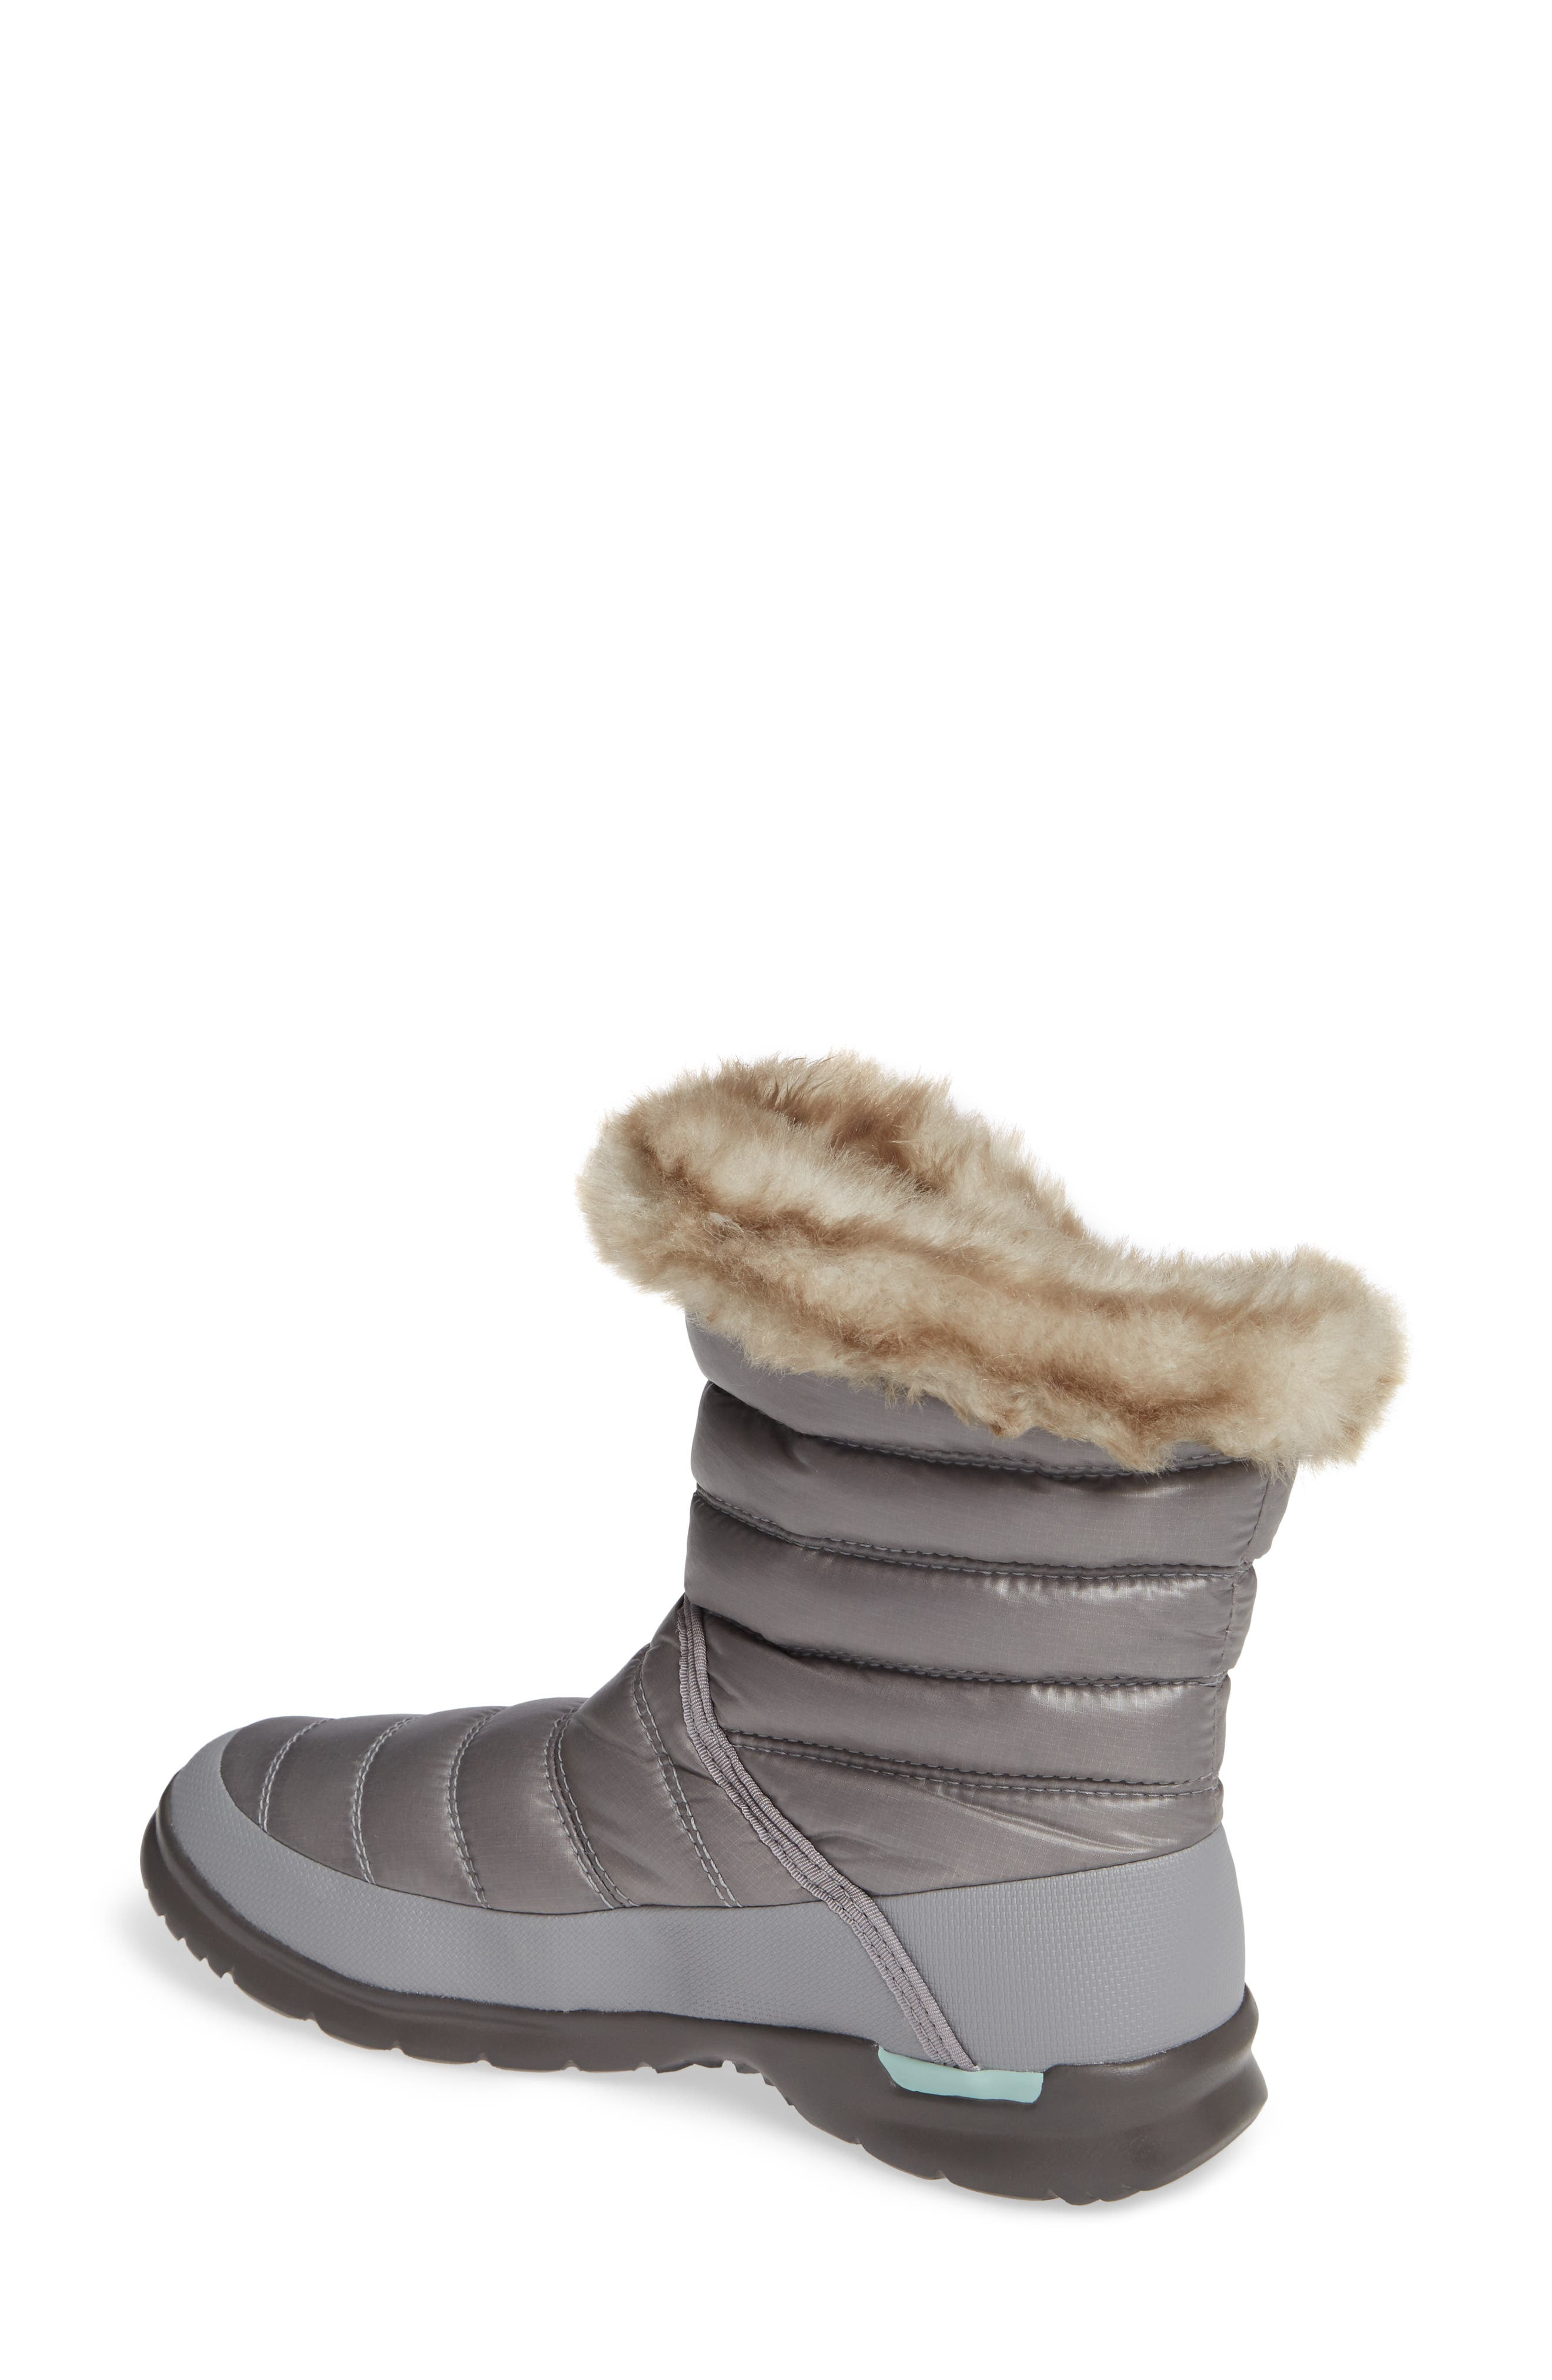 Microbaffle Waterproof ThermoBall<sup>®</sup> Insulated Winter Boot,                             Alternate thumbnail 2, color,                             SHINY FROST GREY/ BLUE HAZE